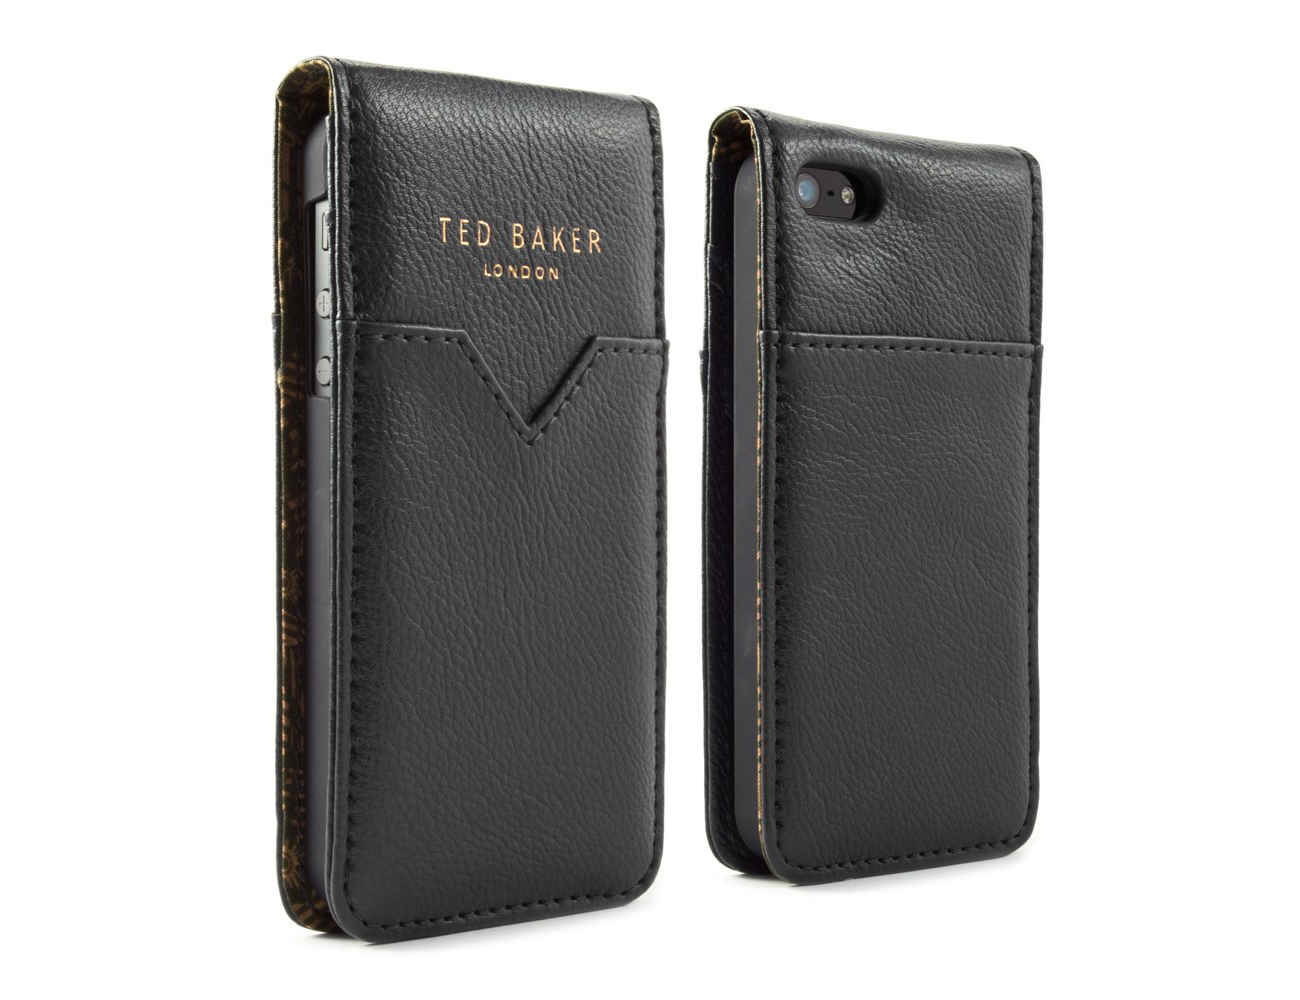 Coque iPhone Ted Baker style cuir